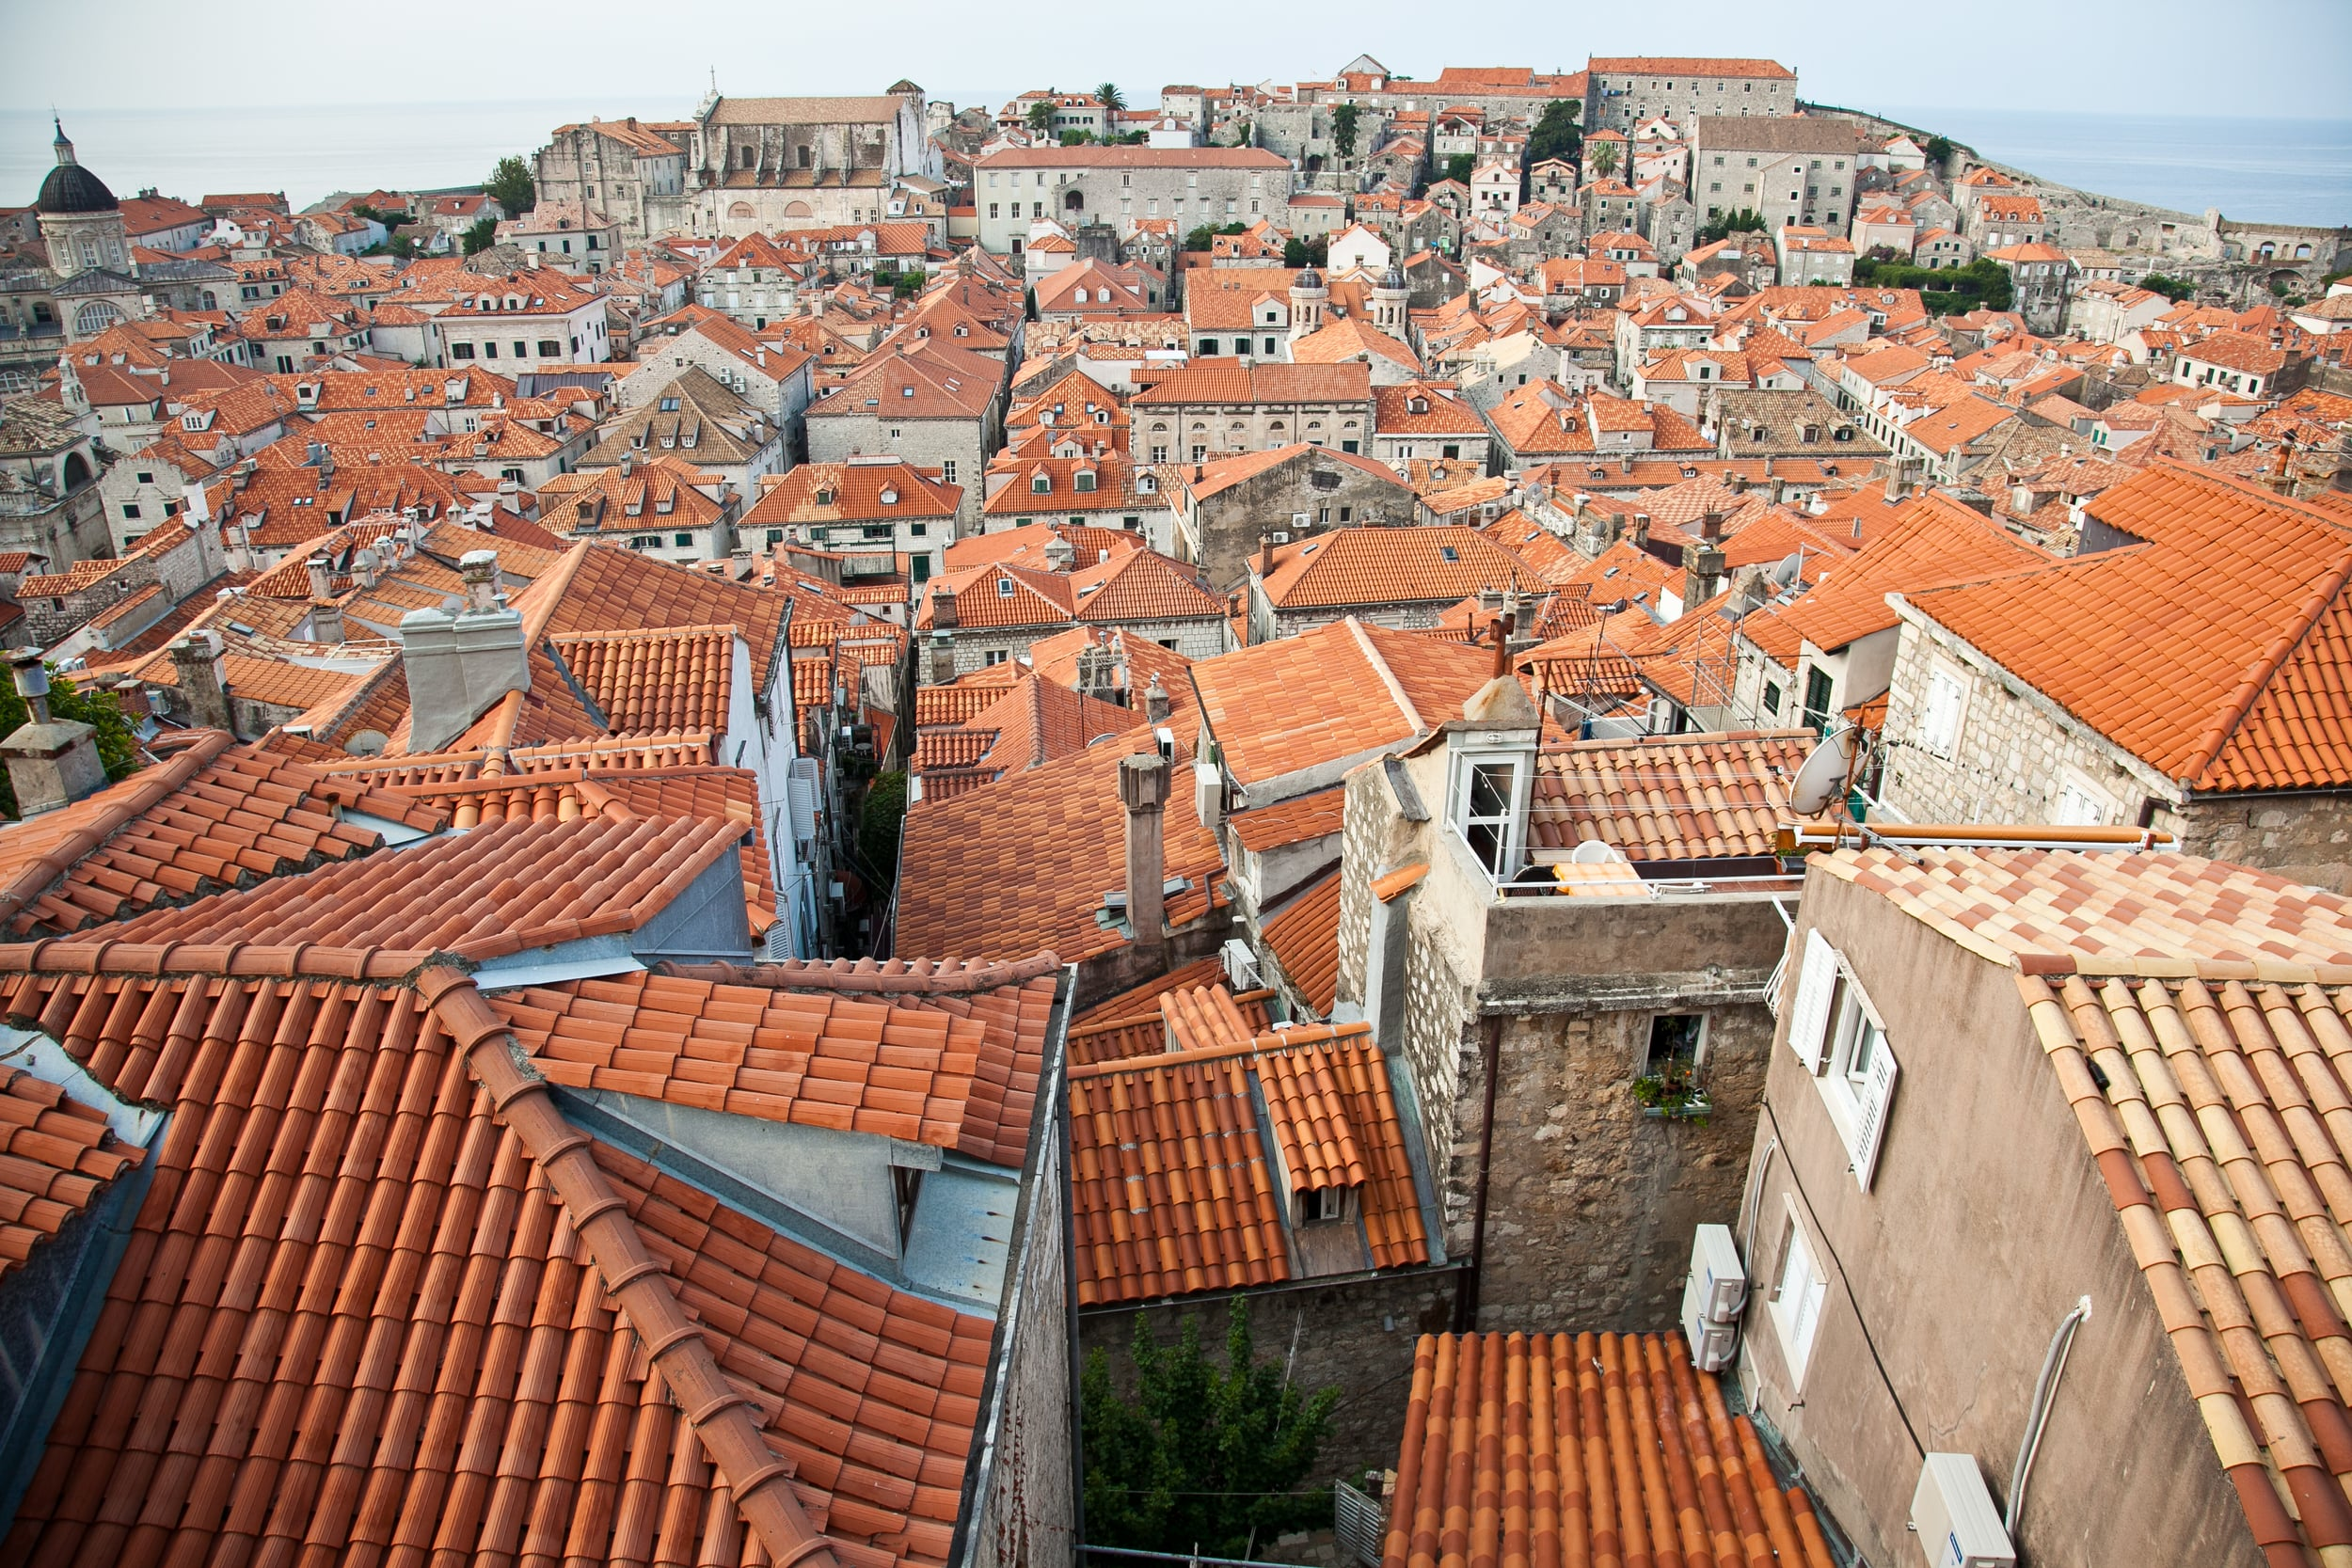 trisa-taro-view-from-above-city-walls-dubrovnik-croatia.jpg